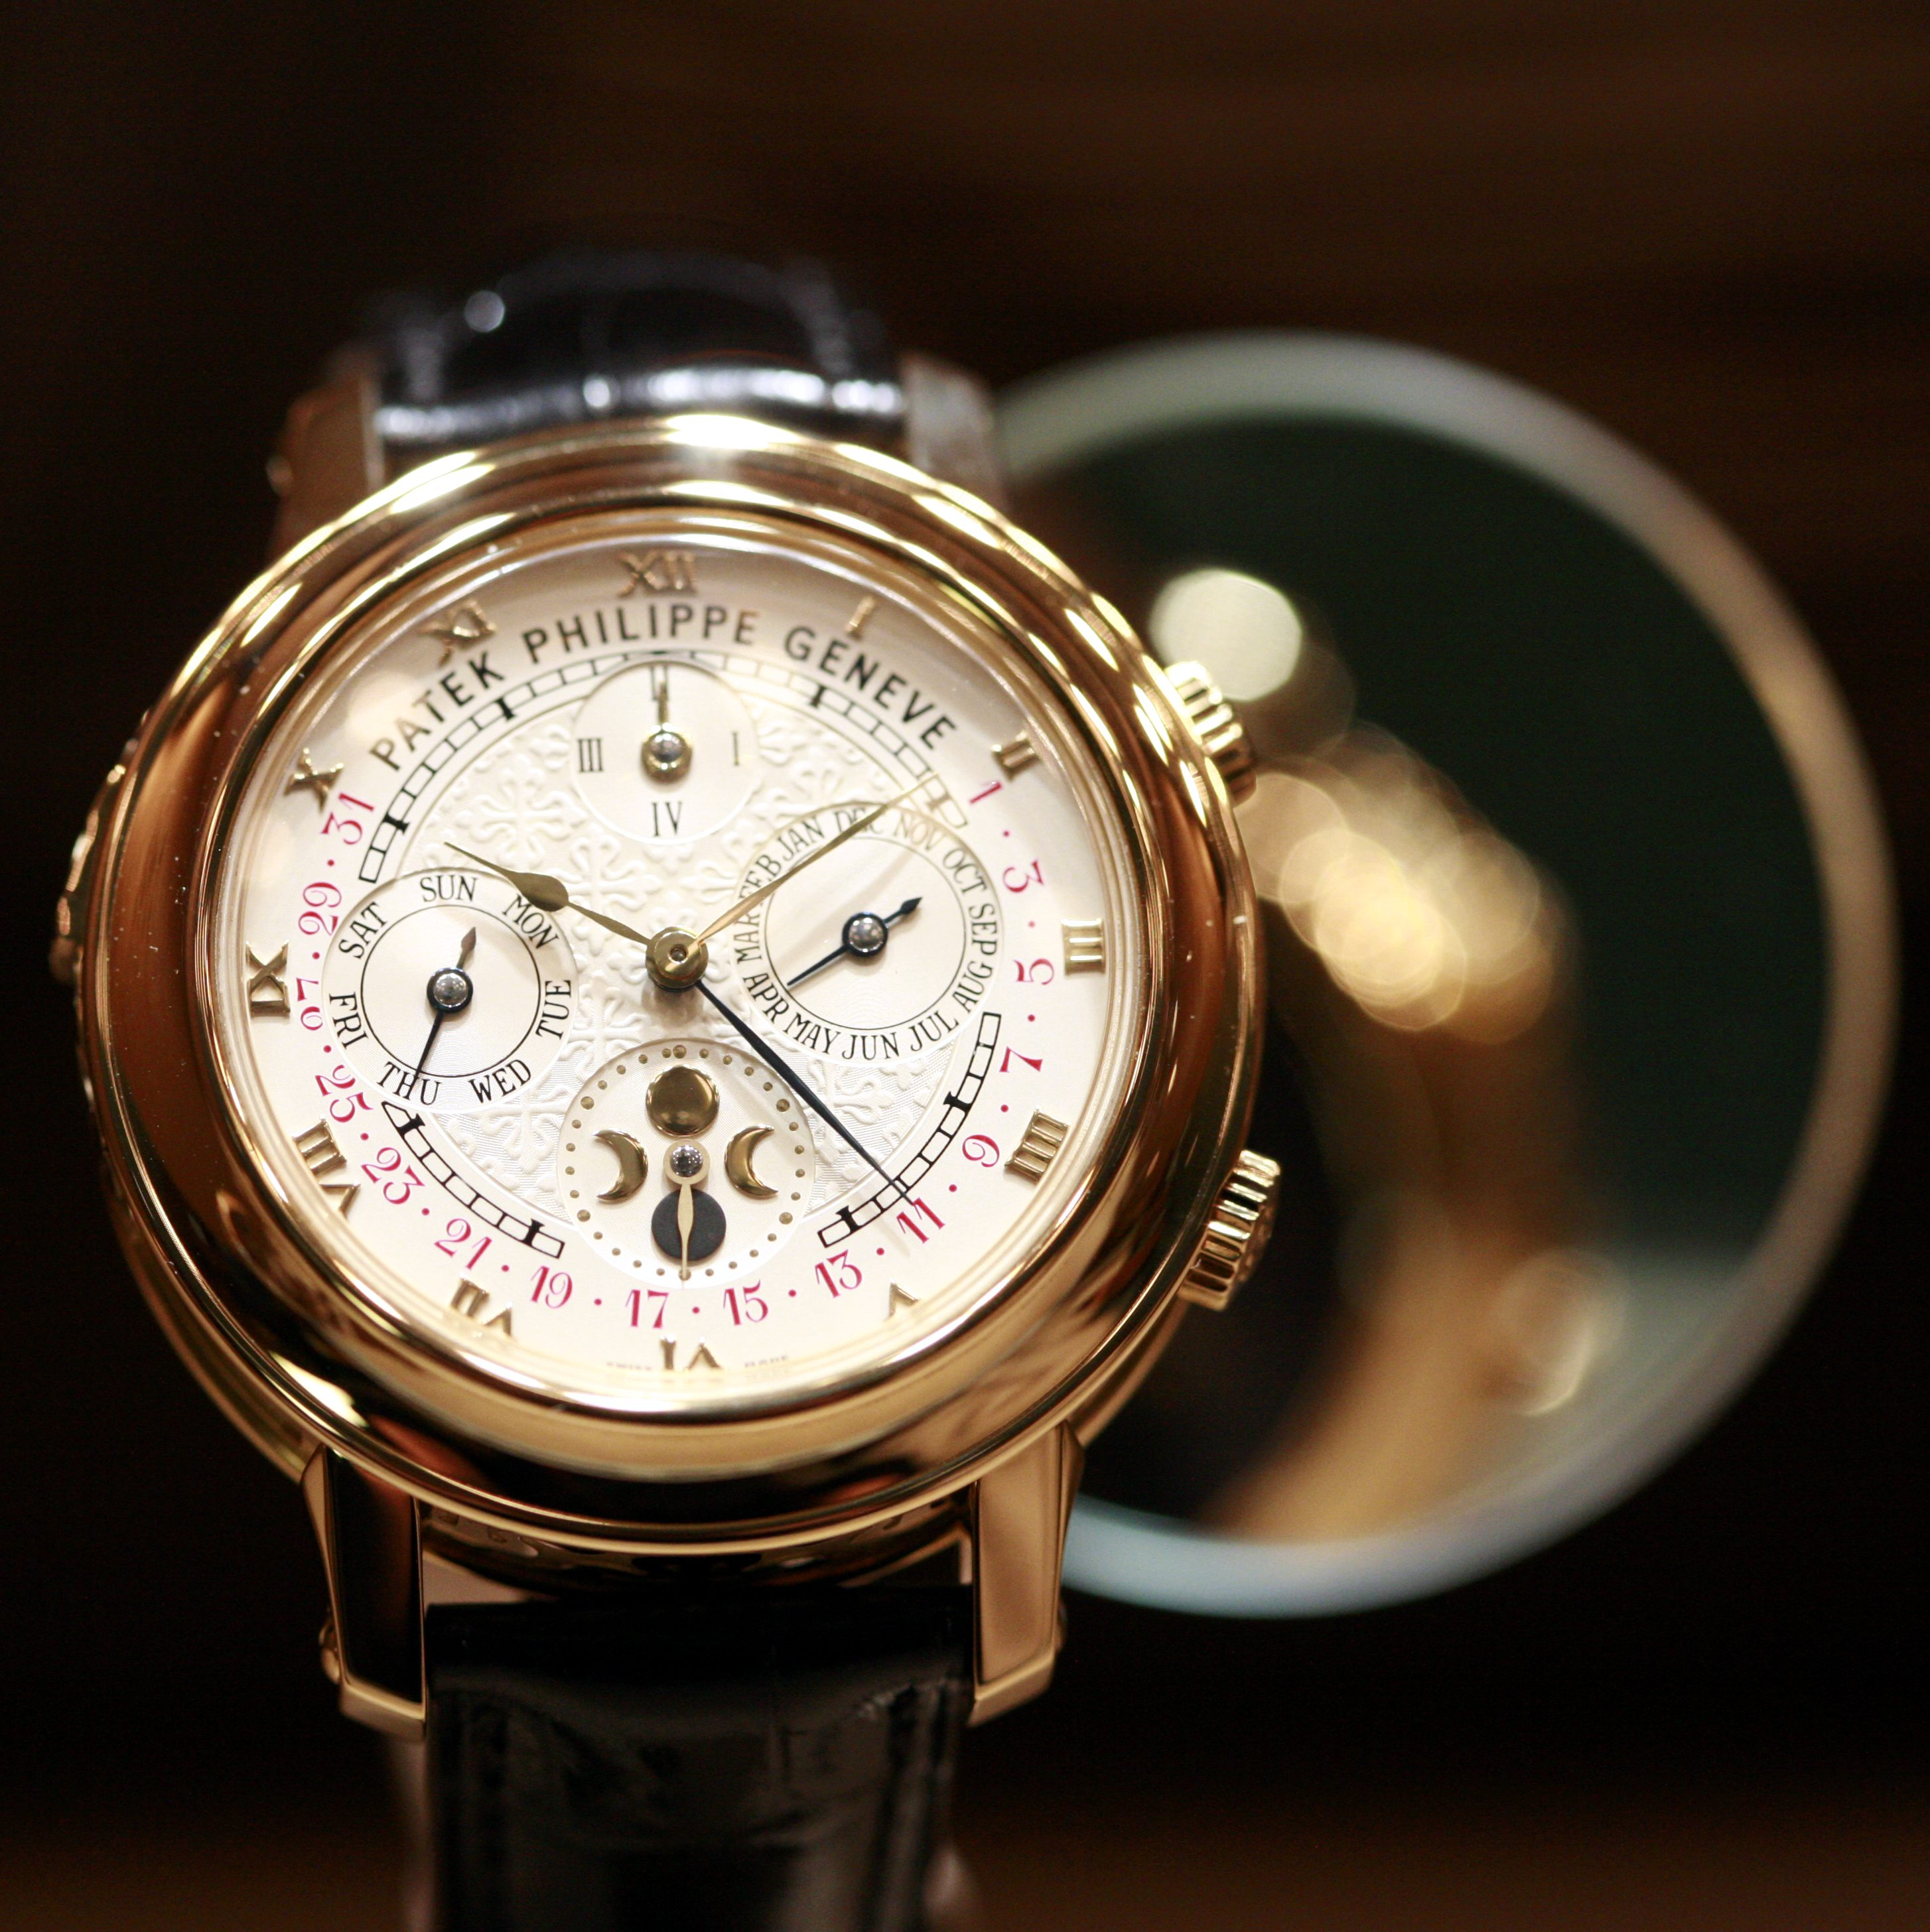 Patek Philippe man watch